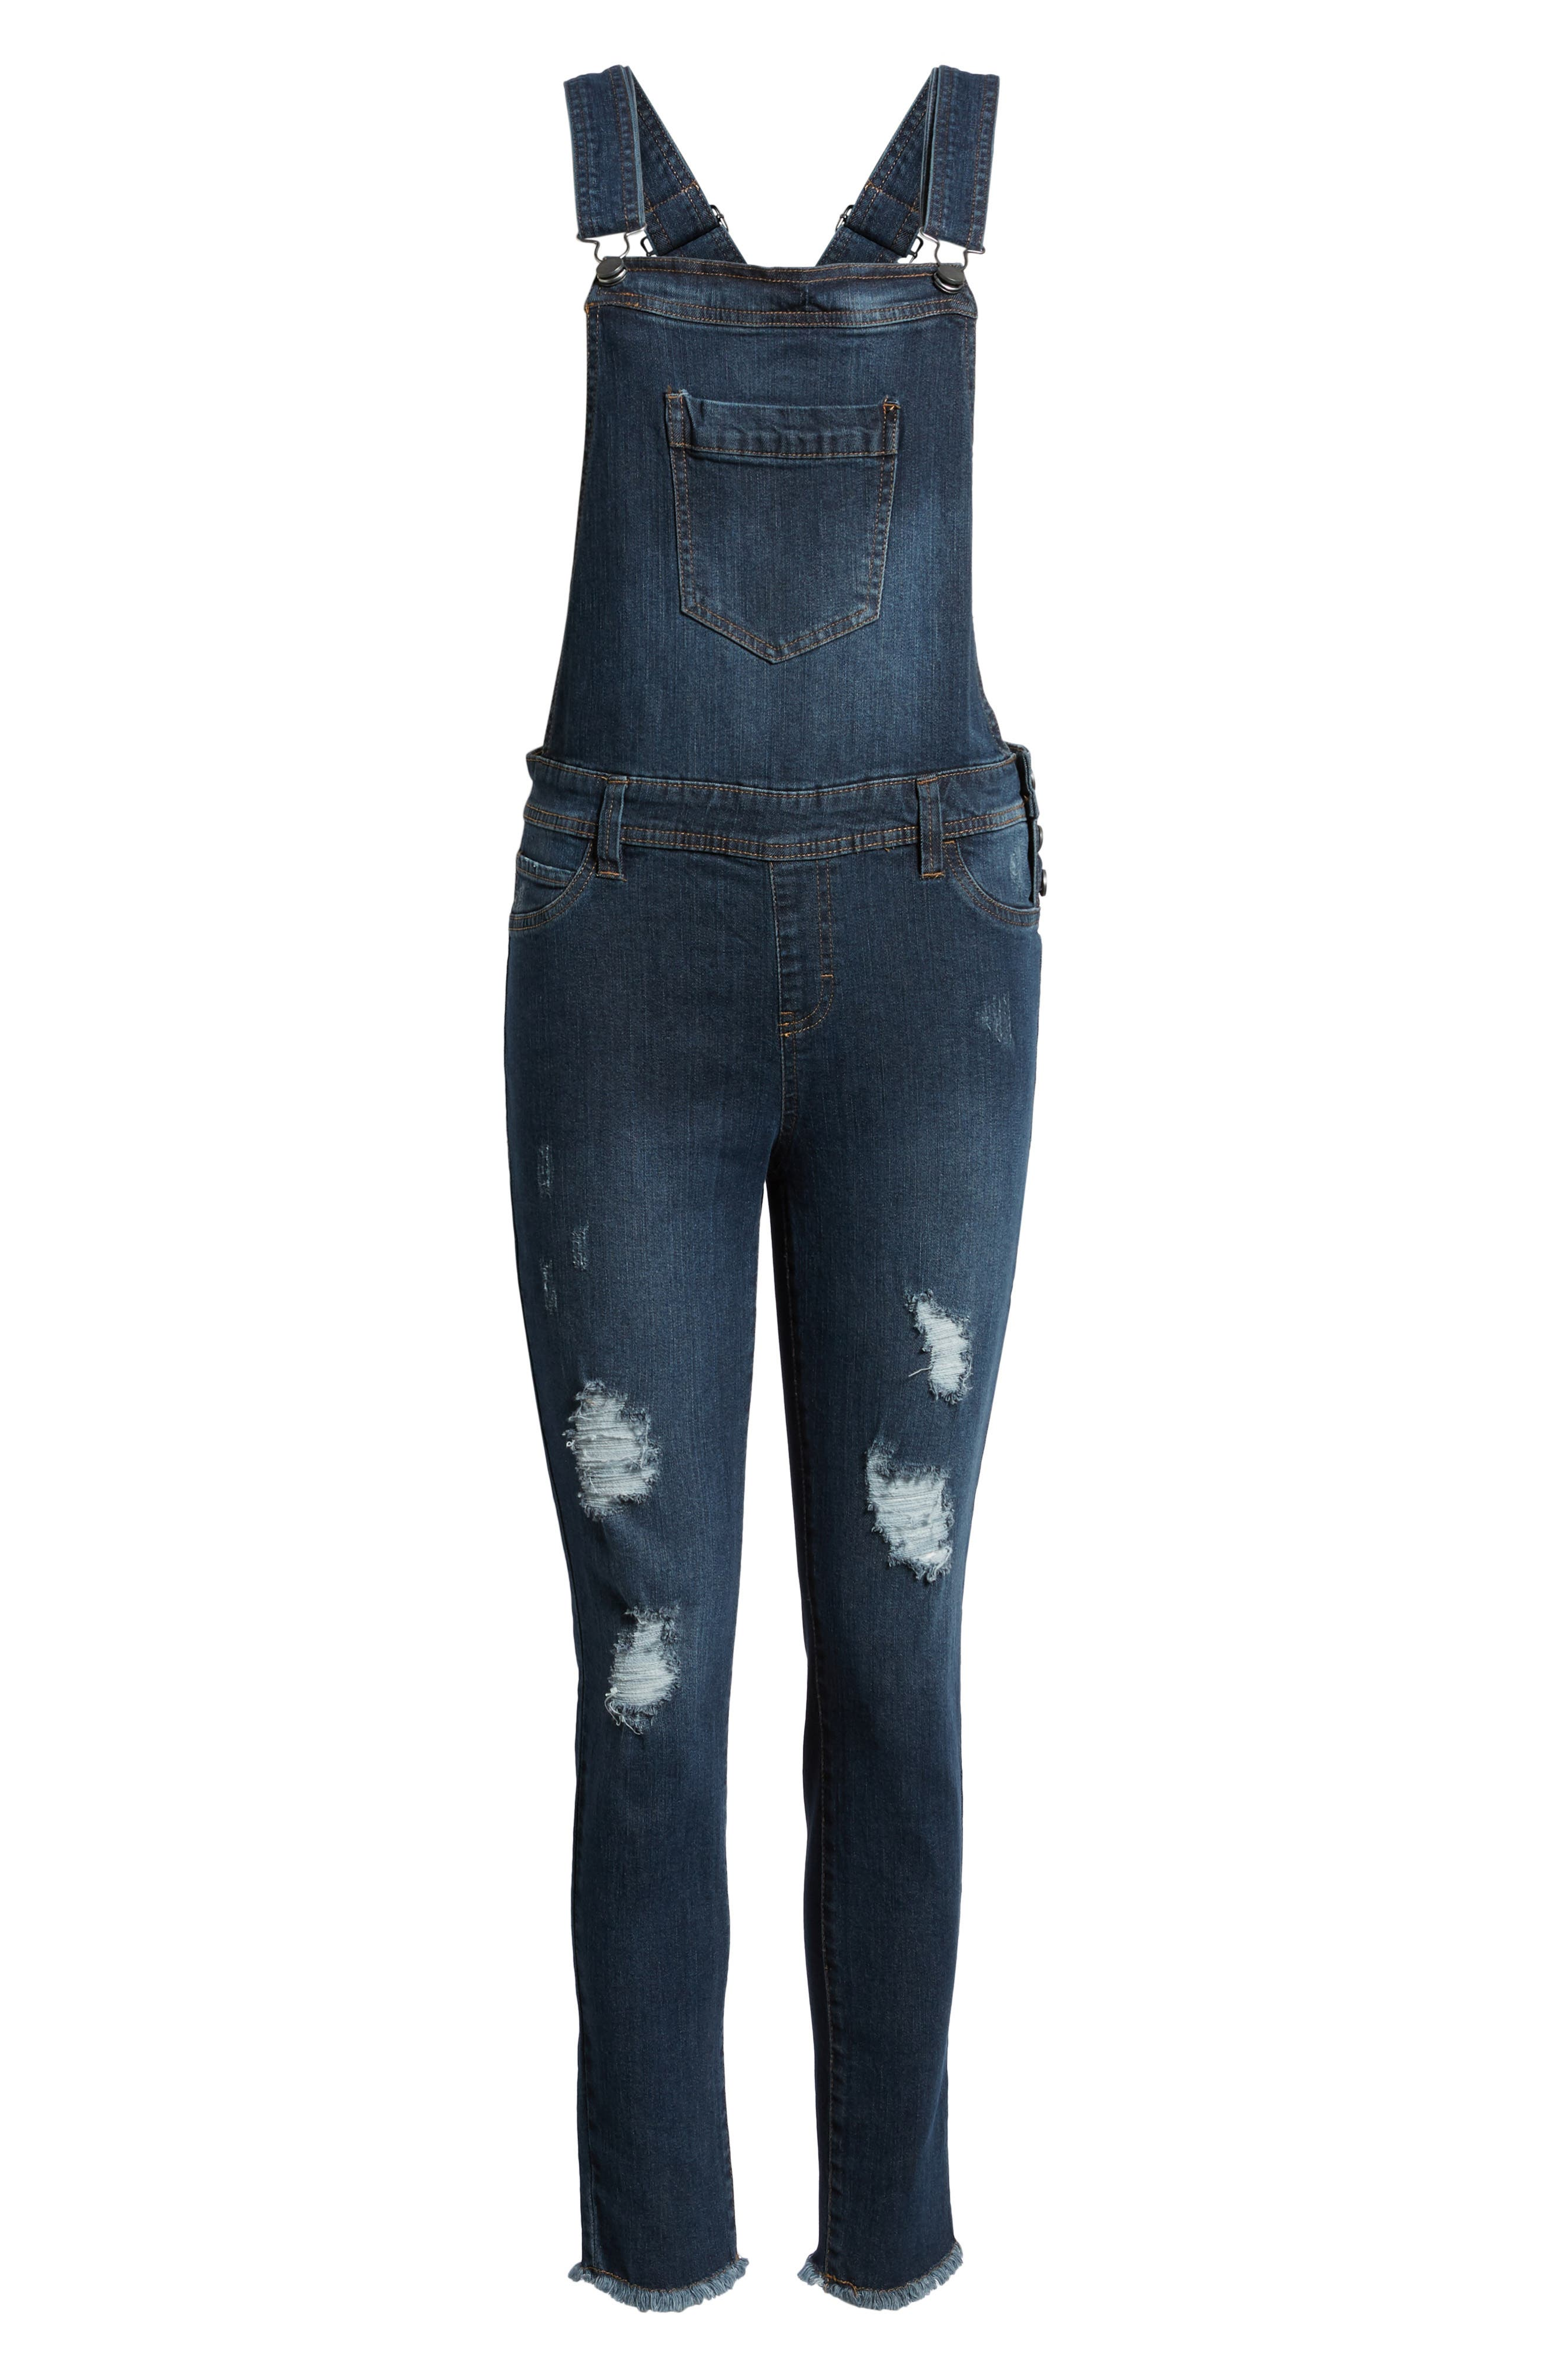 TINSEL,                             Ripped Skinny Overalls,                             Alternate thumbnail 7, color,                             400